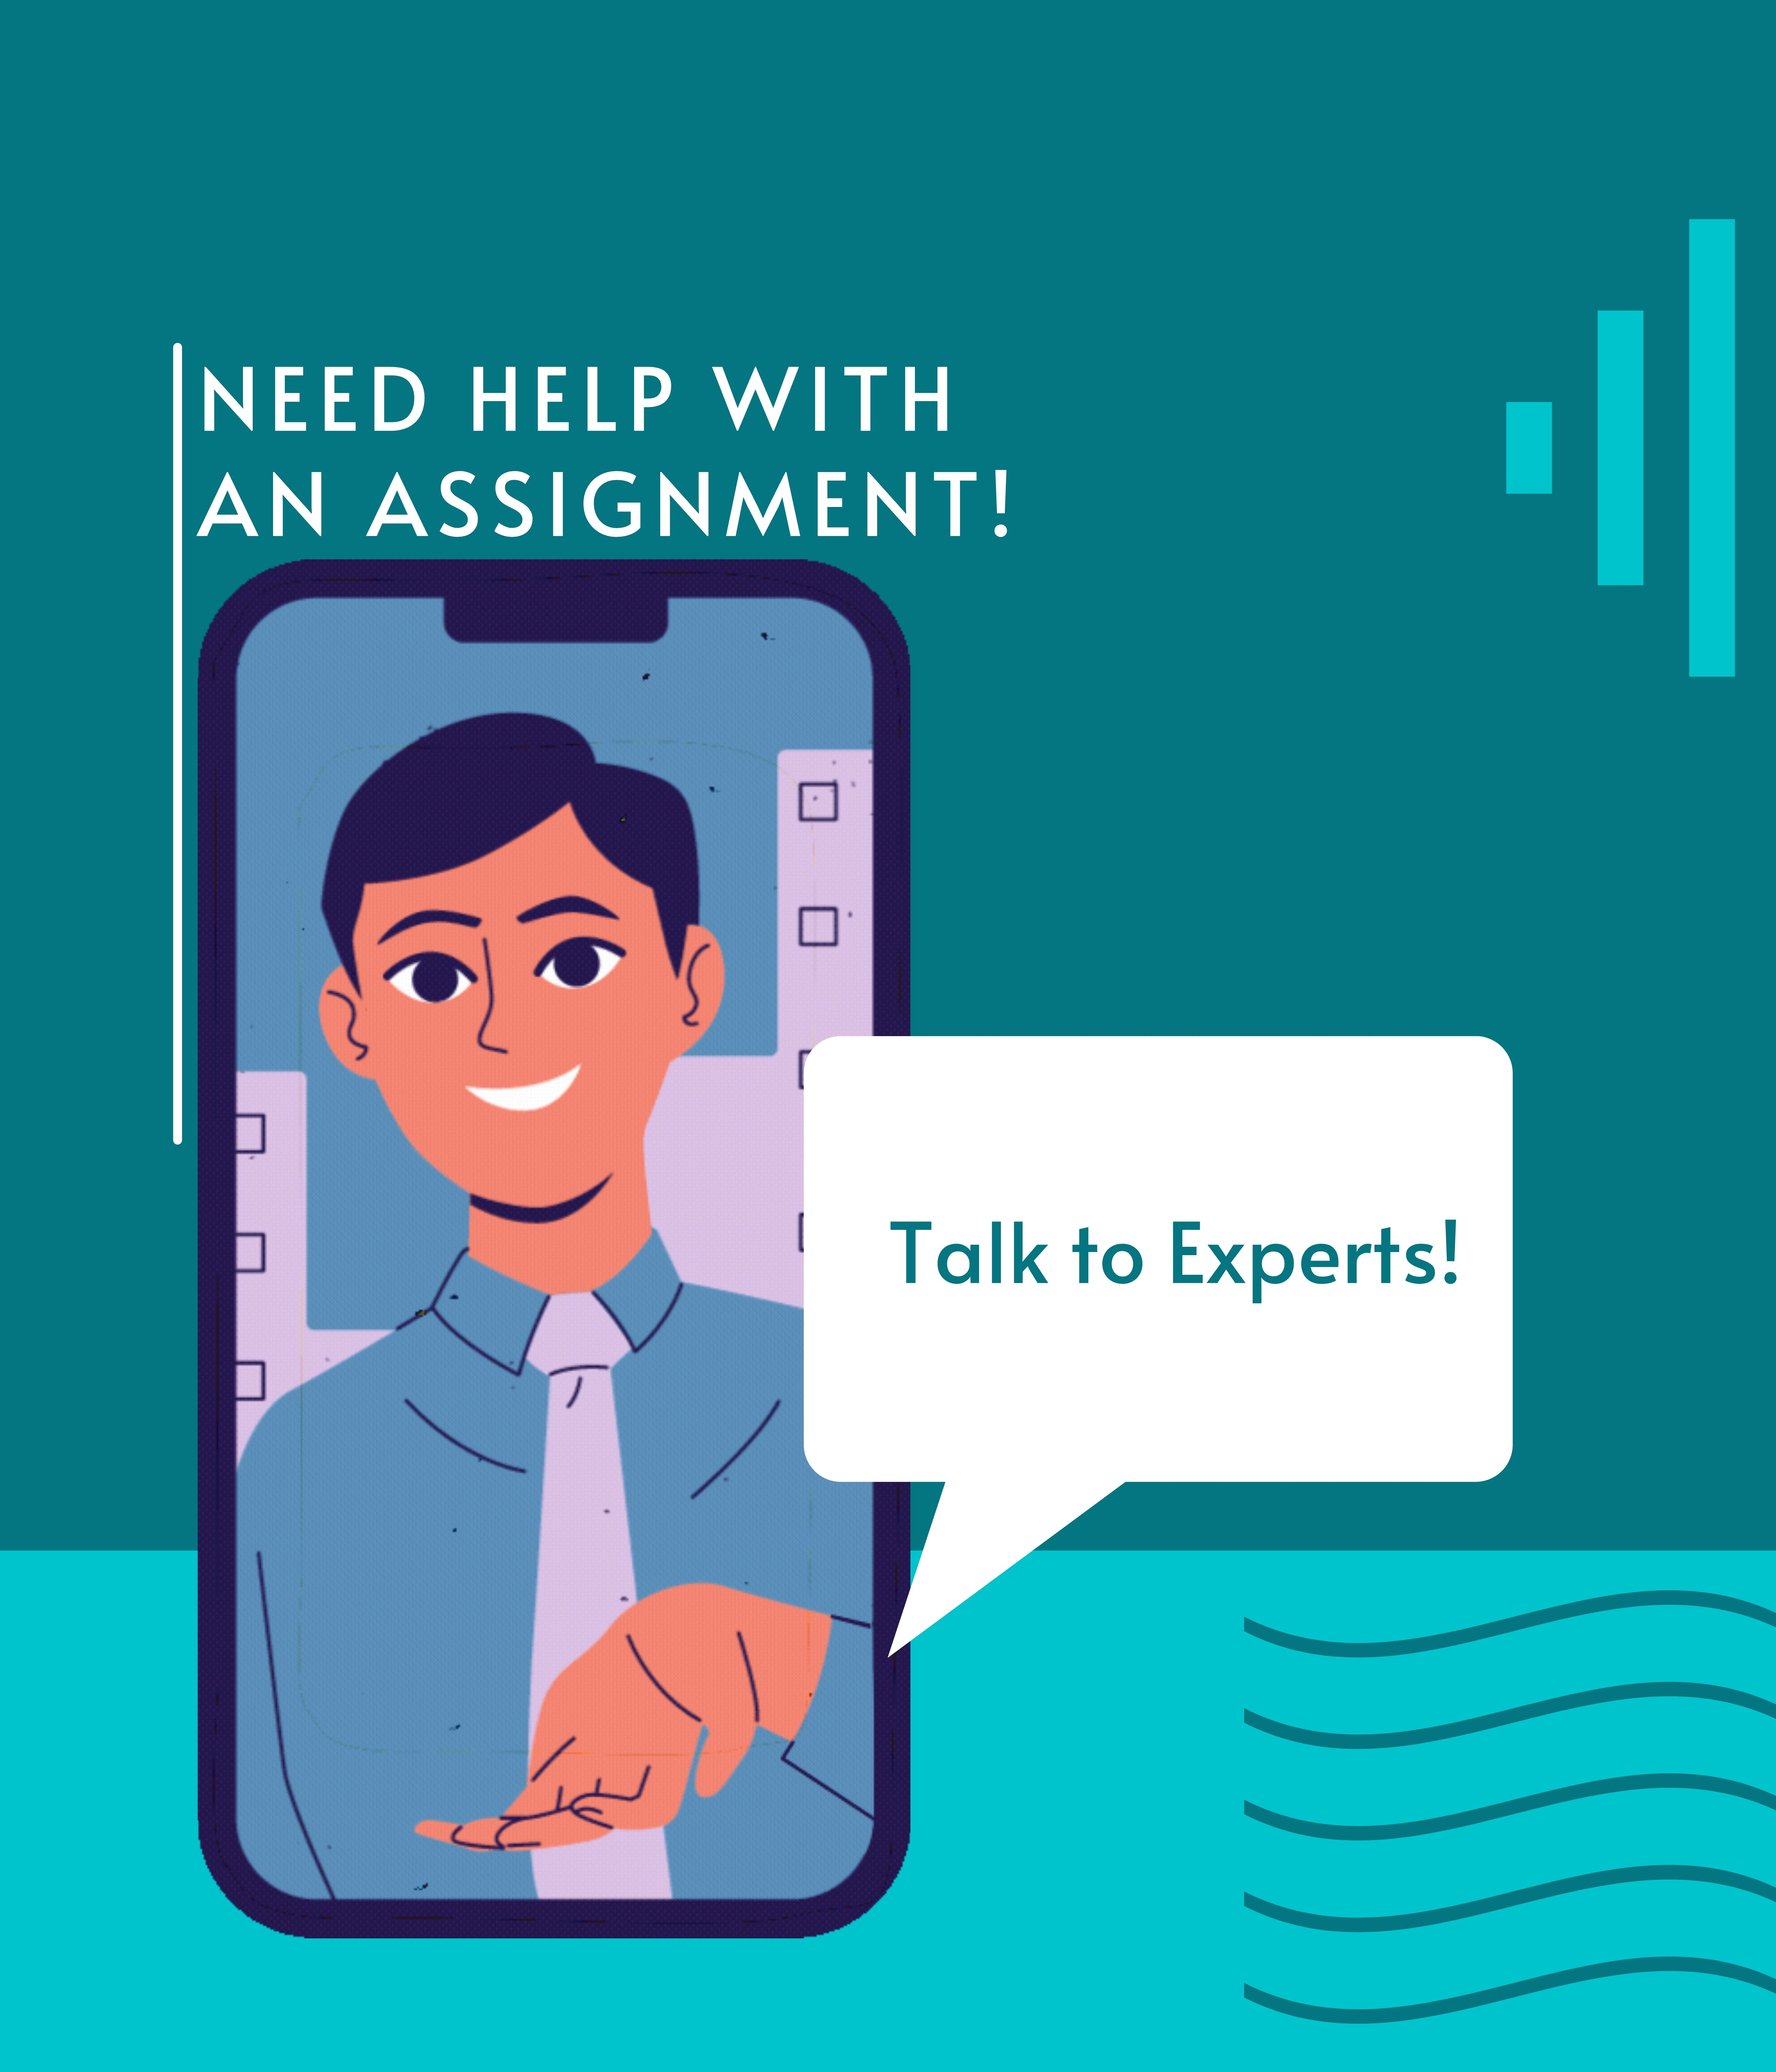 image of assignment expert support